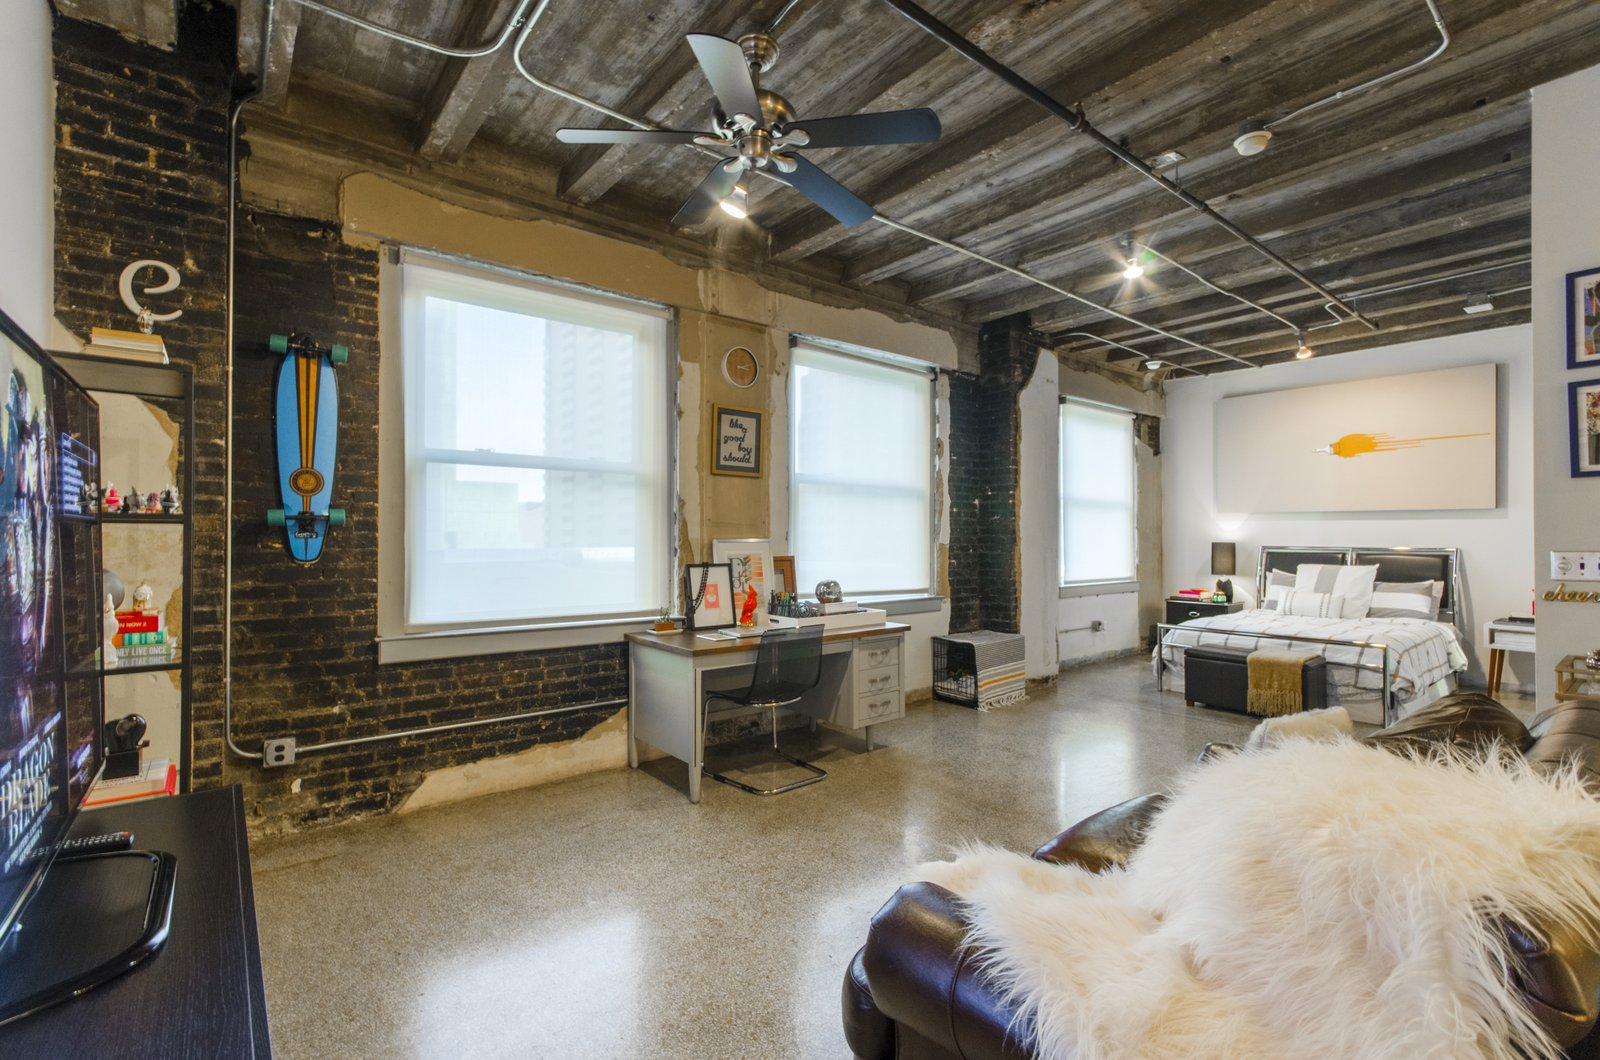 Garage Apartment For Rent In Dallas The Davis Building Loft Apartments For Rent In Downtown Dallas Tx